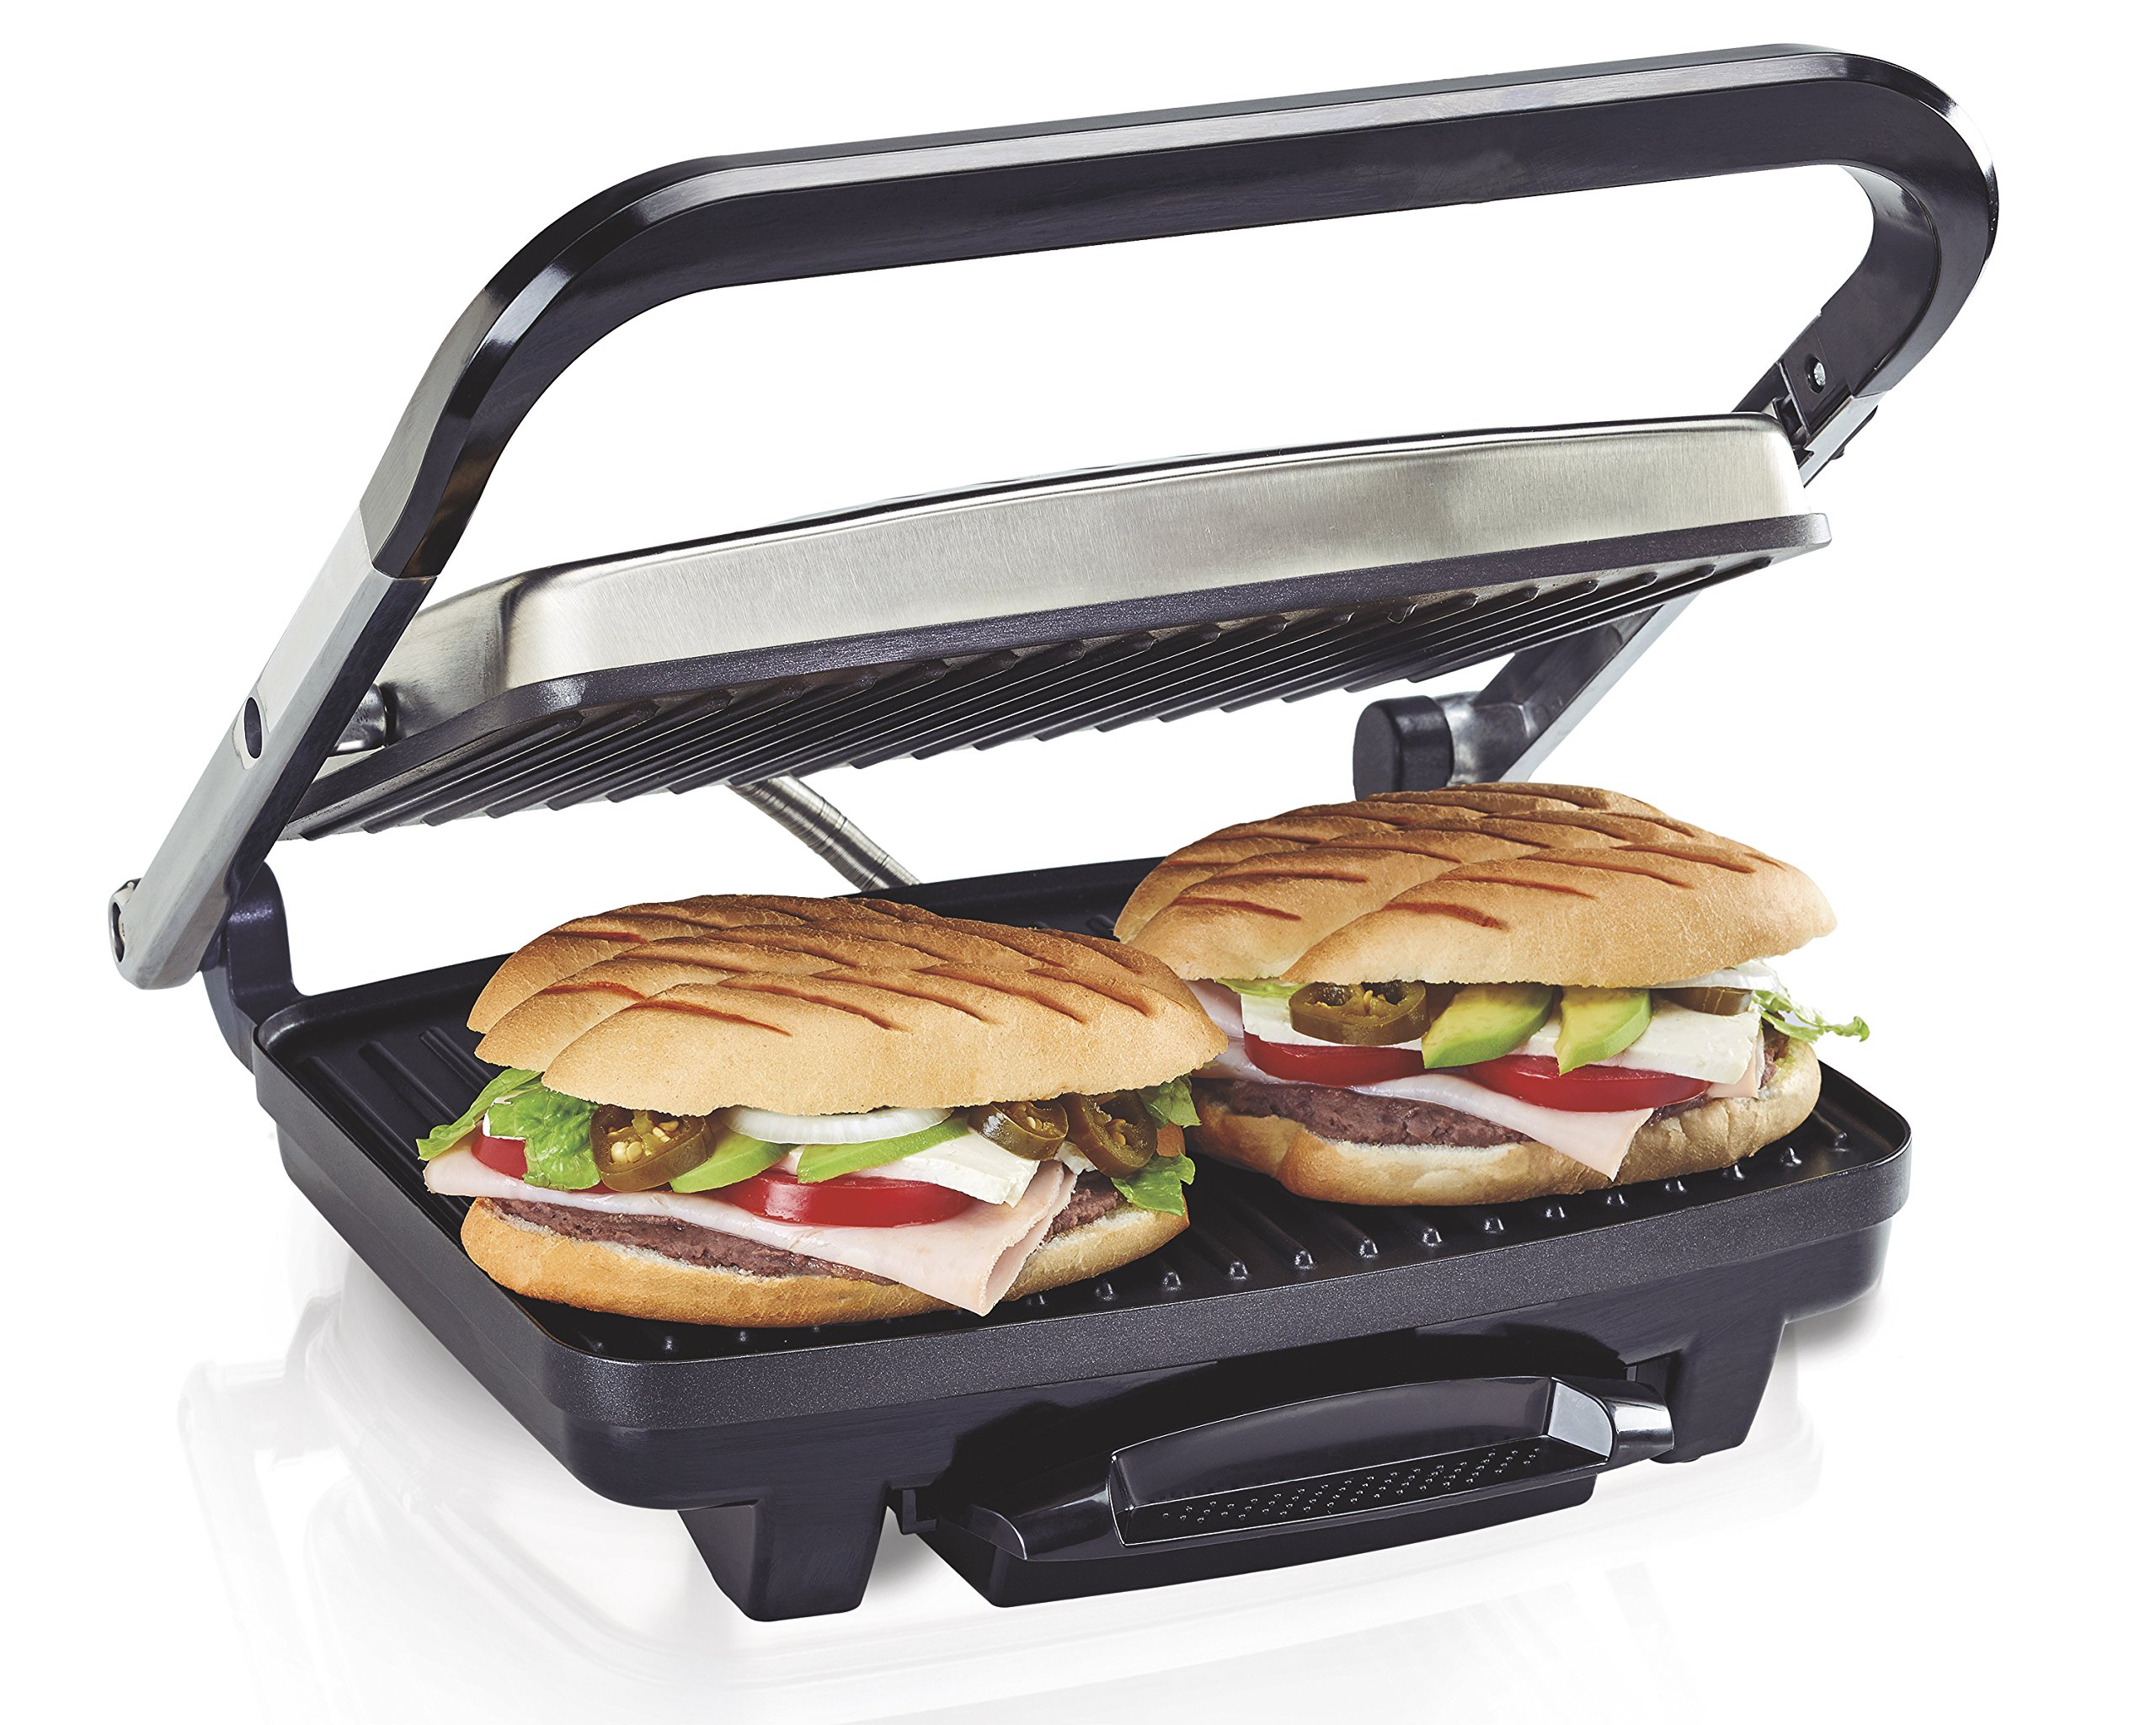 Hamilton Beach (25410) Panini Press, Sandwich Maker & Grill, Electric, 95'' Cooking Surface, Stainless Steel by Hamilton Beach